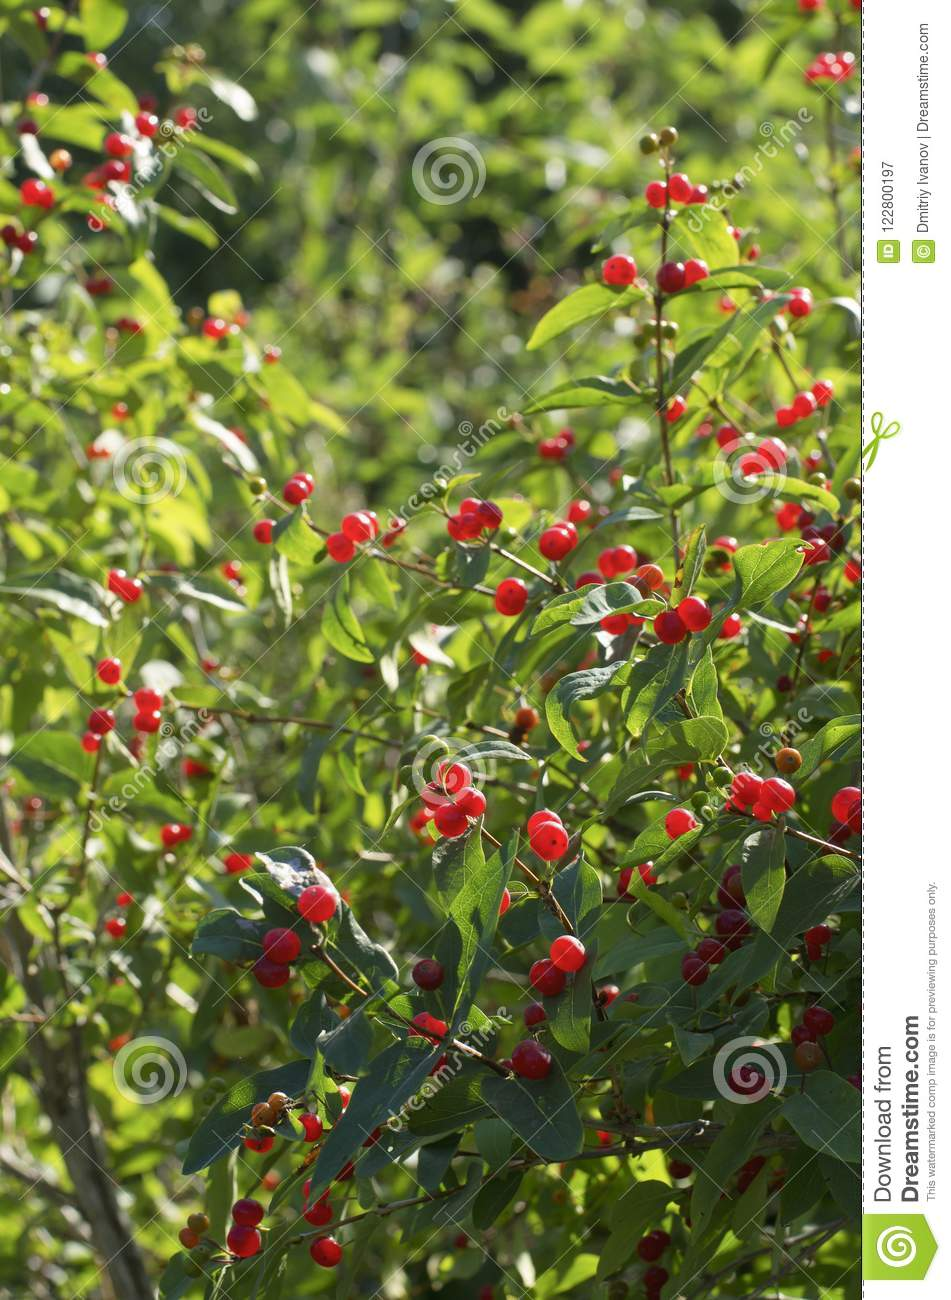 Shrub of honeysuckle with red berries vertical orientation